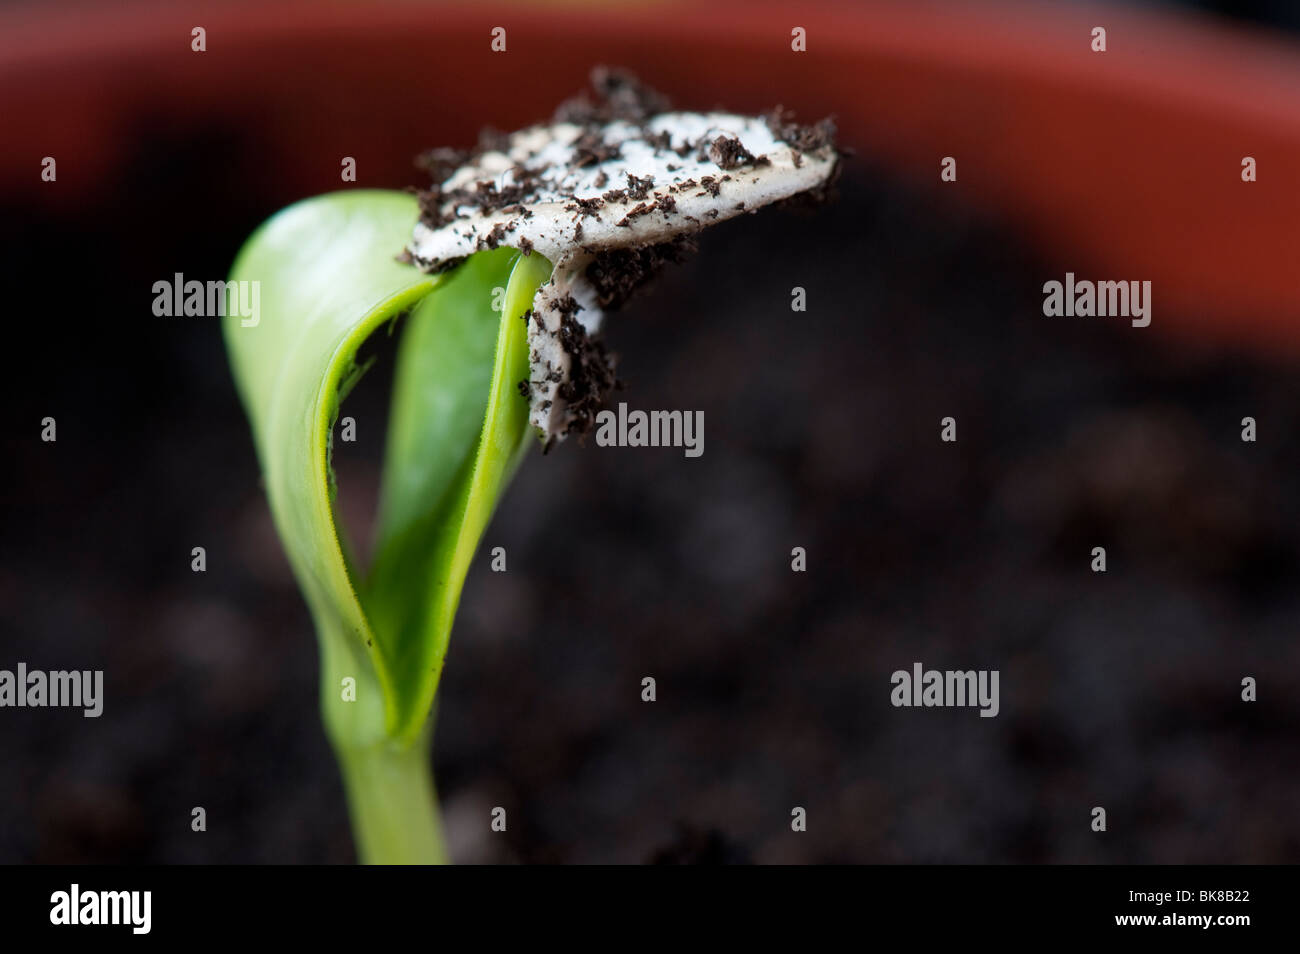 Courgette 'midnight' hybrid plant seedlings discarding its seed case. UK - Stock Image